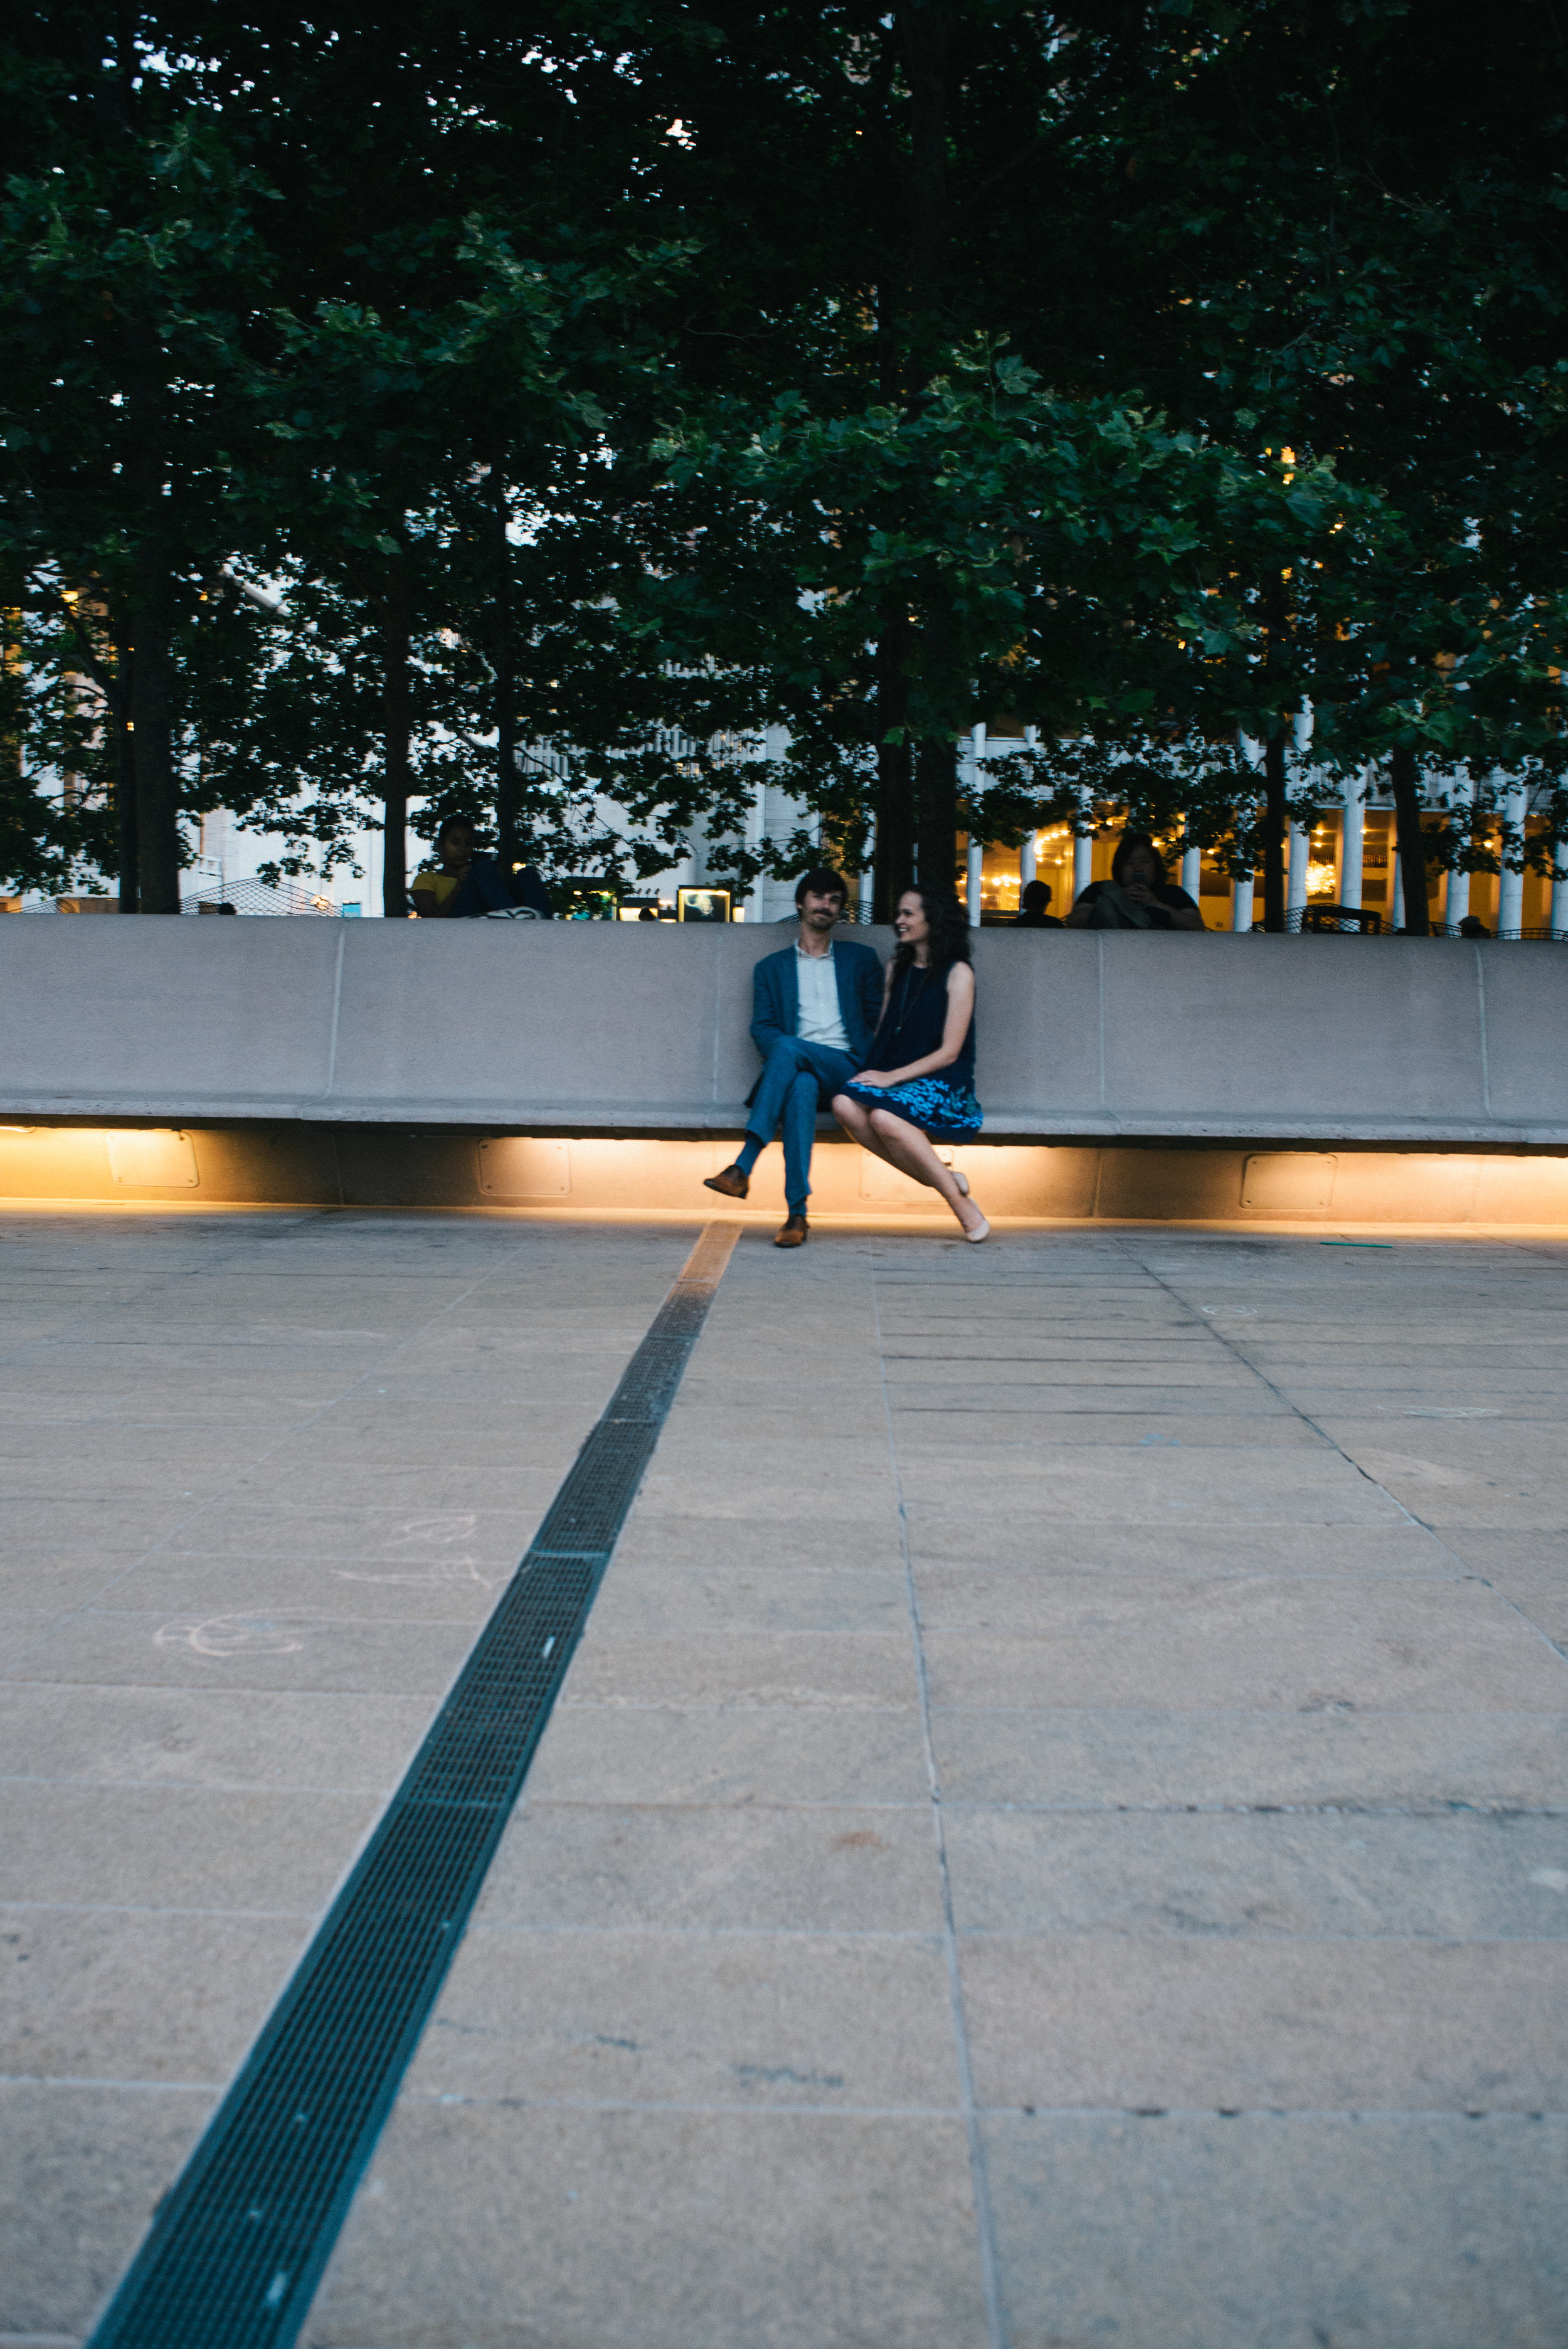 adam-and-tansy-new-york-city-central-park-lincoln-center-bethesda-fountain-engagement-session-june-2016- (161 of 176).jpg